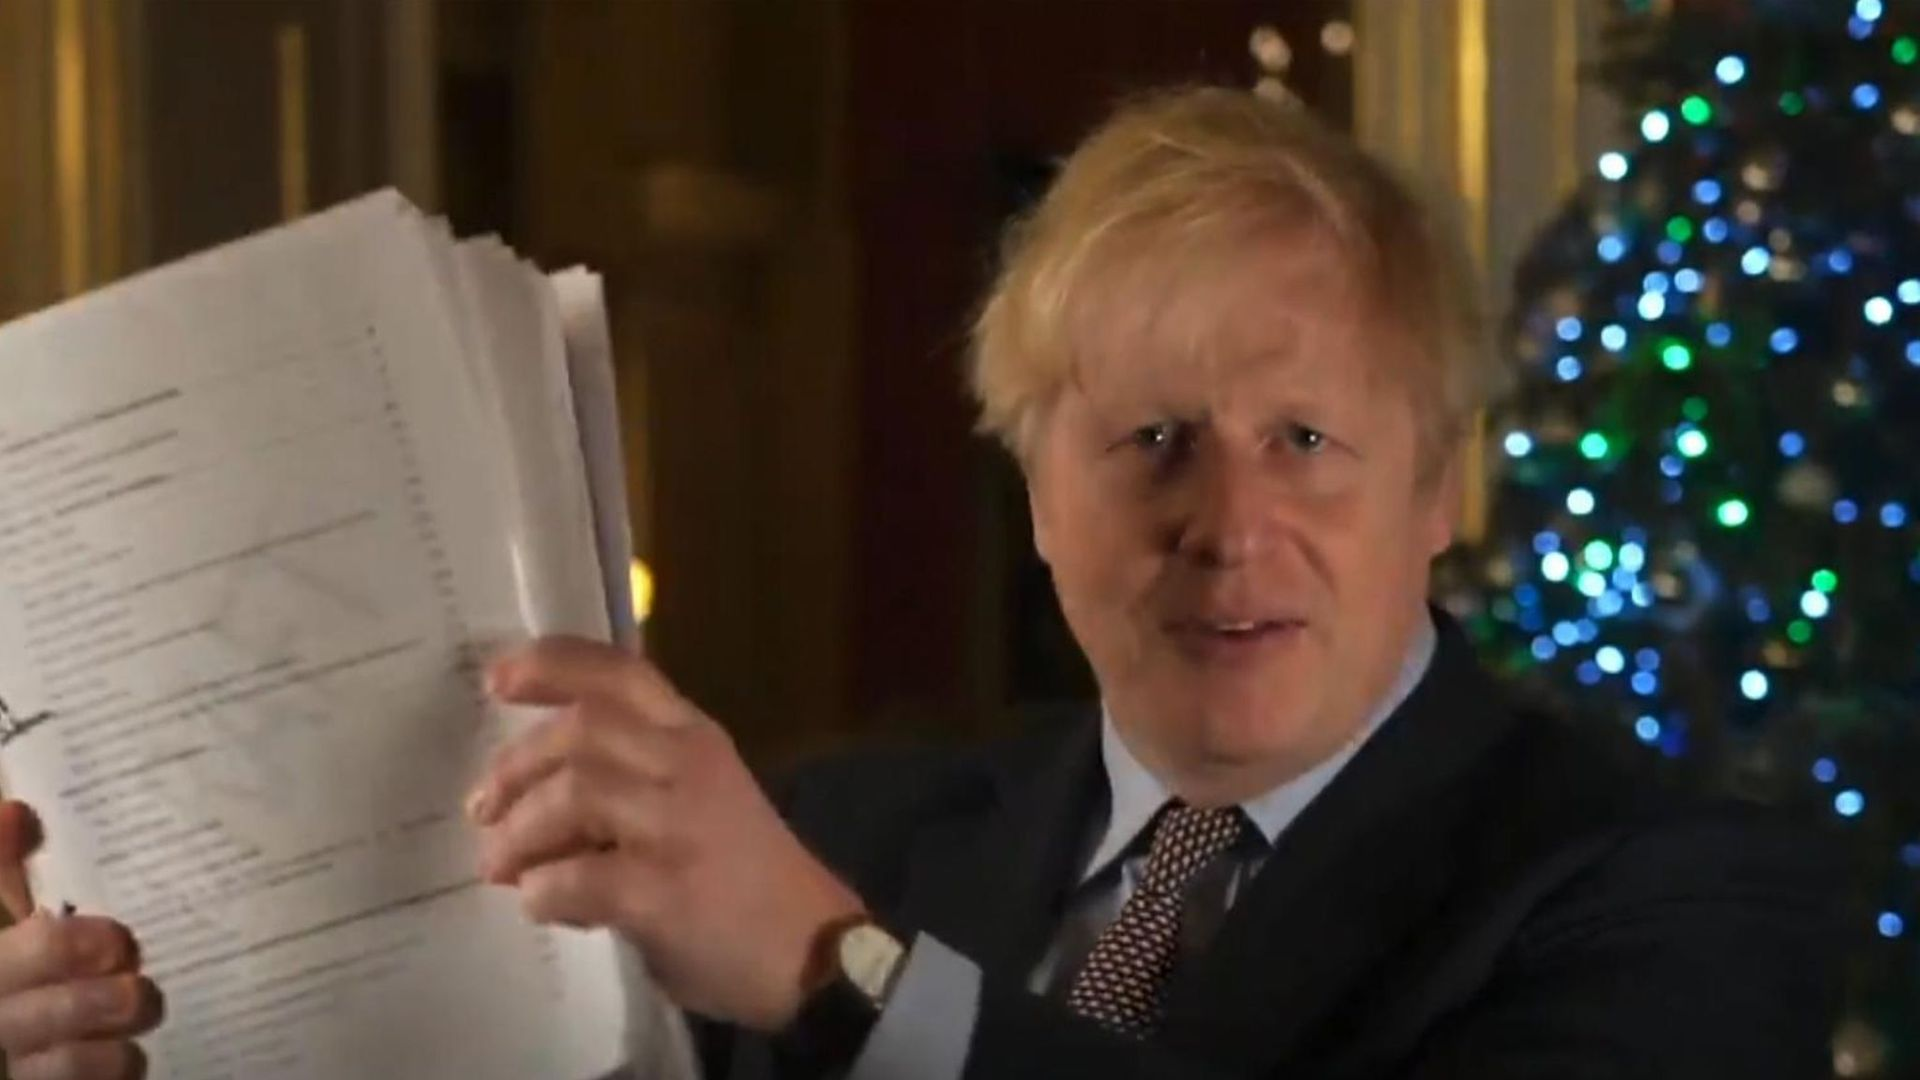 Boris Johnson holds up his Brexit agreement in a Christmas message - Credit: Twitter